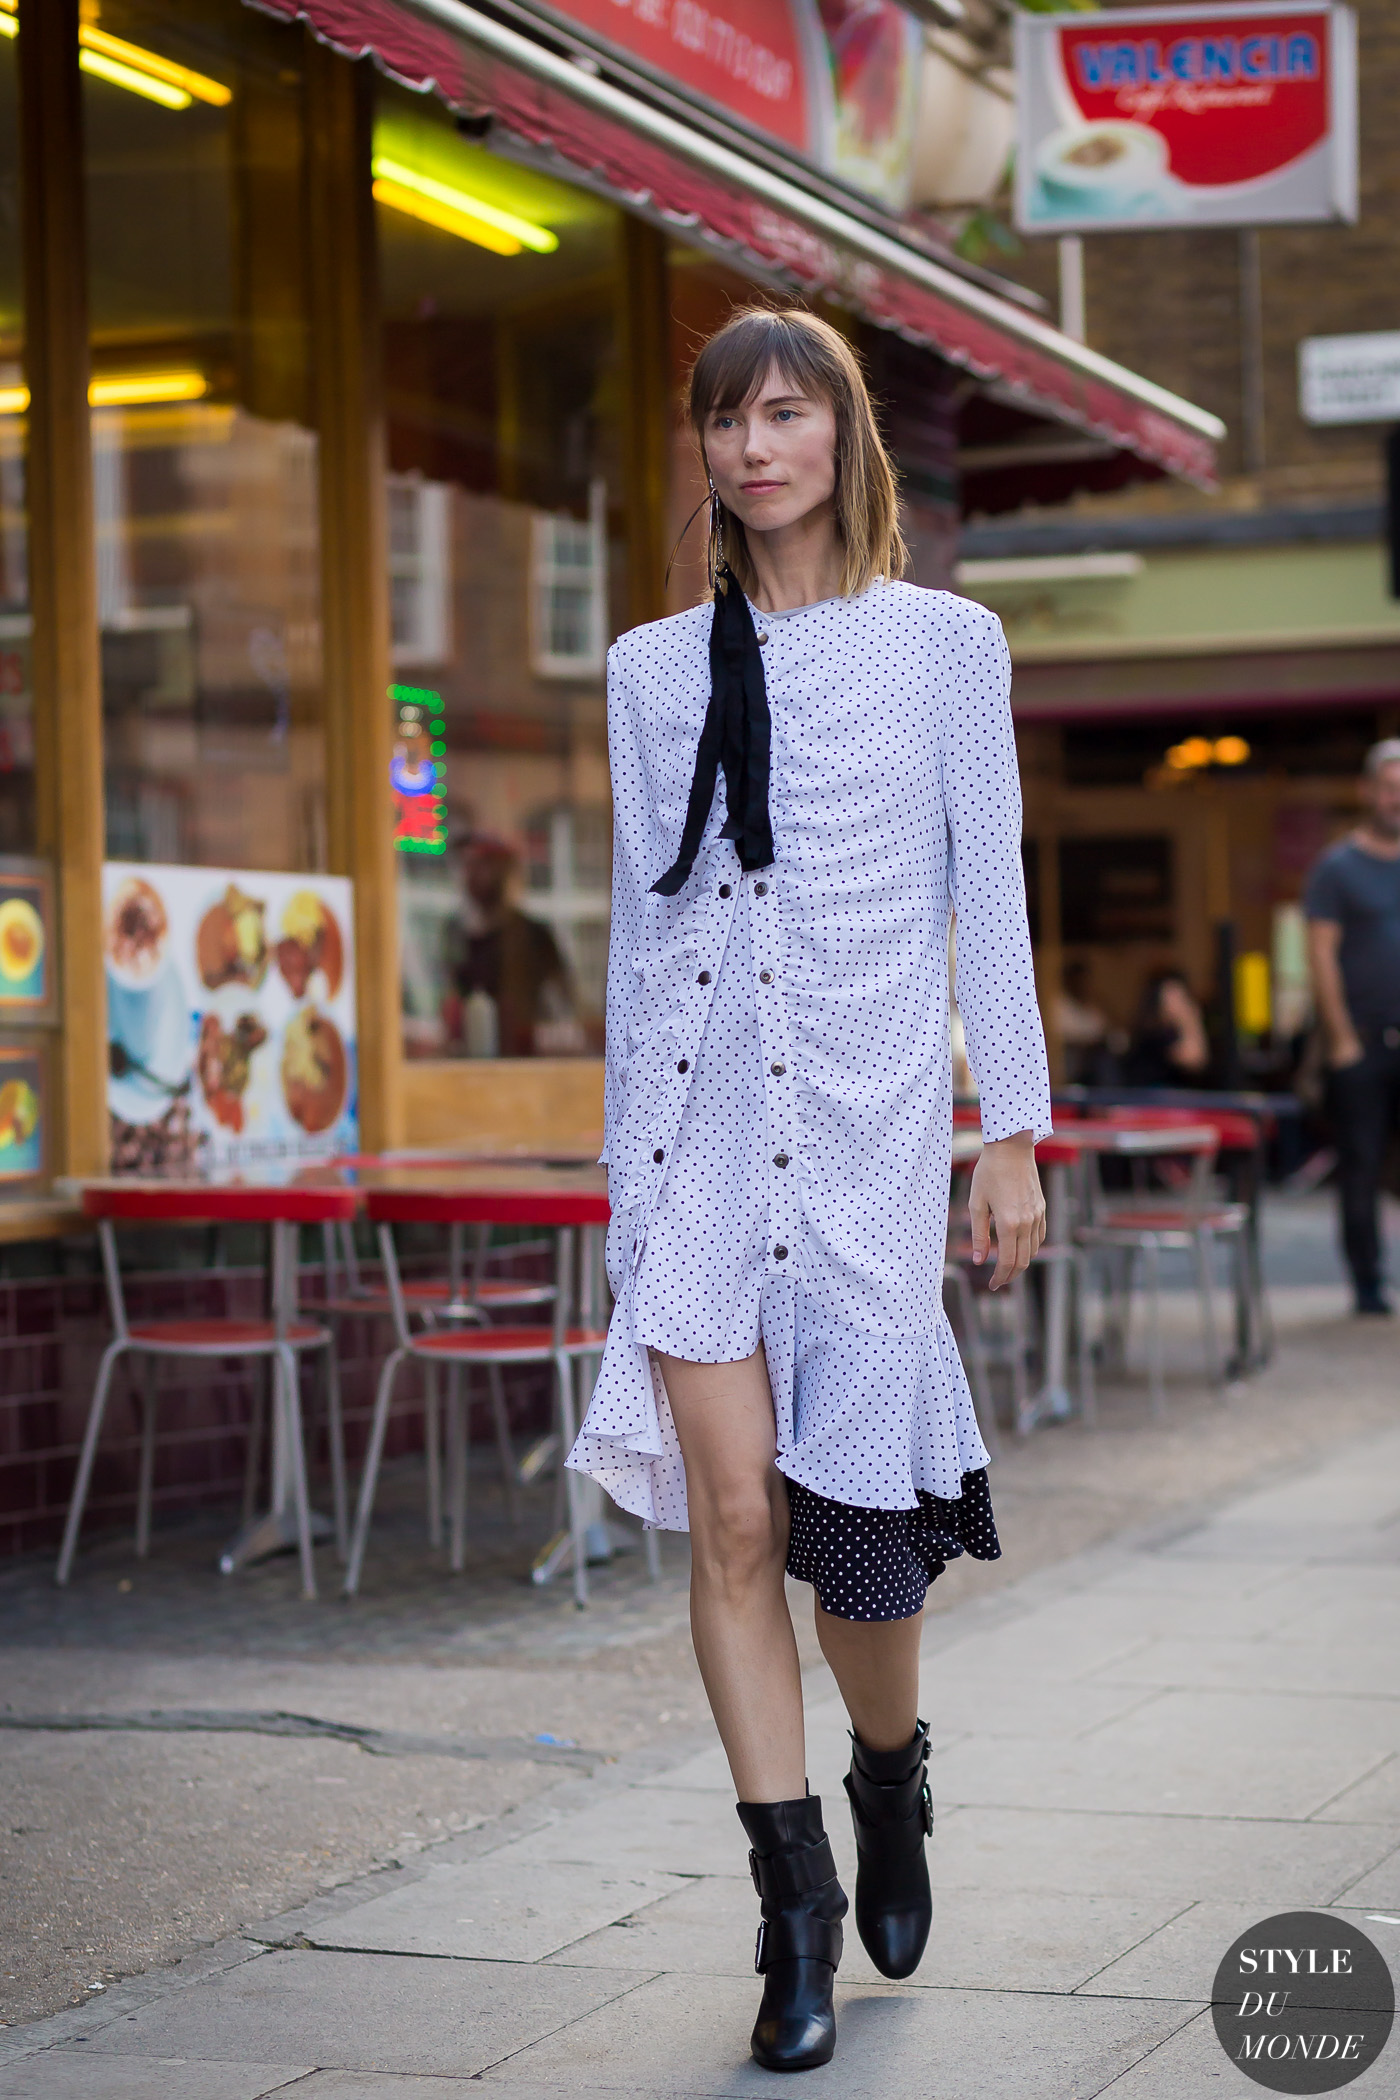 Anya Ziourova Street Style Street Fashion Streetsnaps by STYLEDUMONDE Street Style Fashion Photography